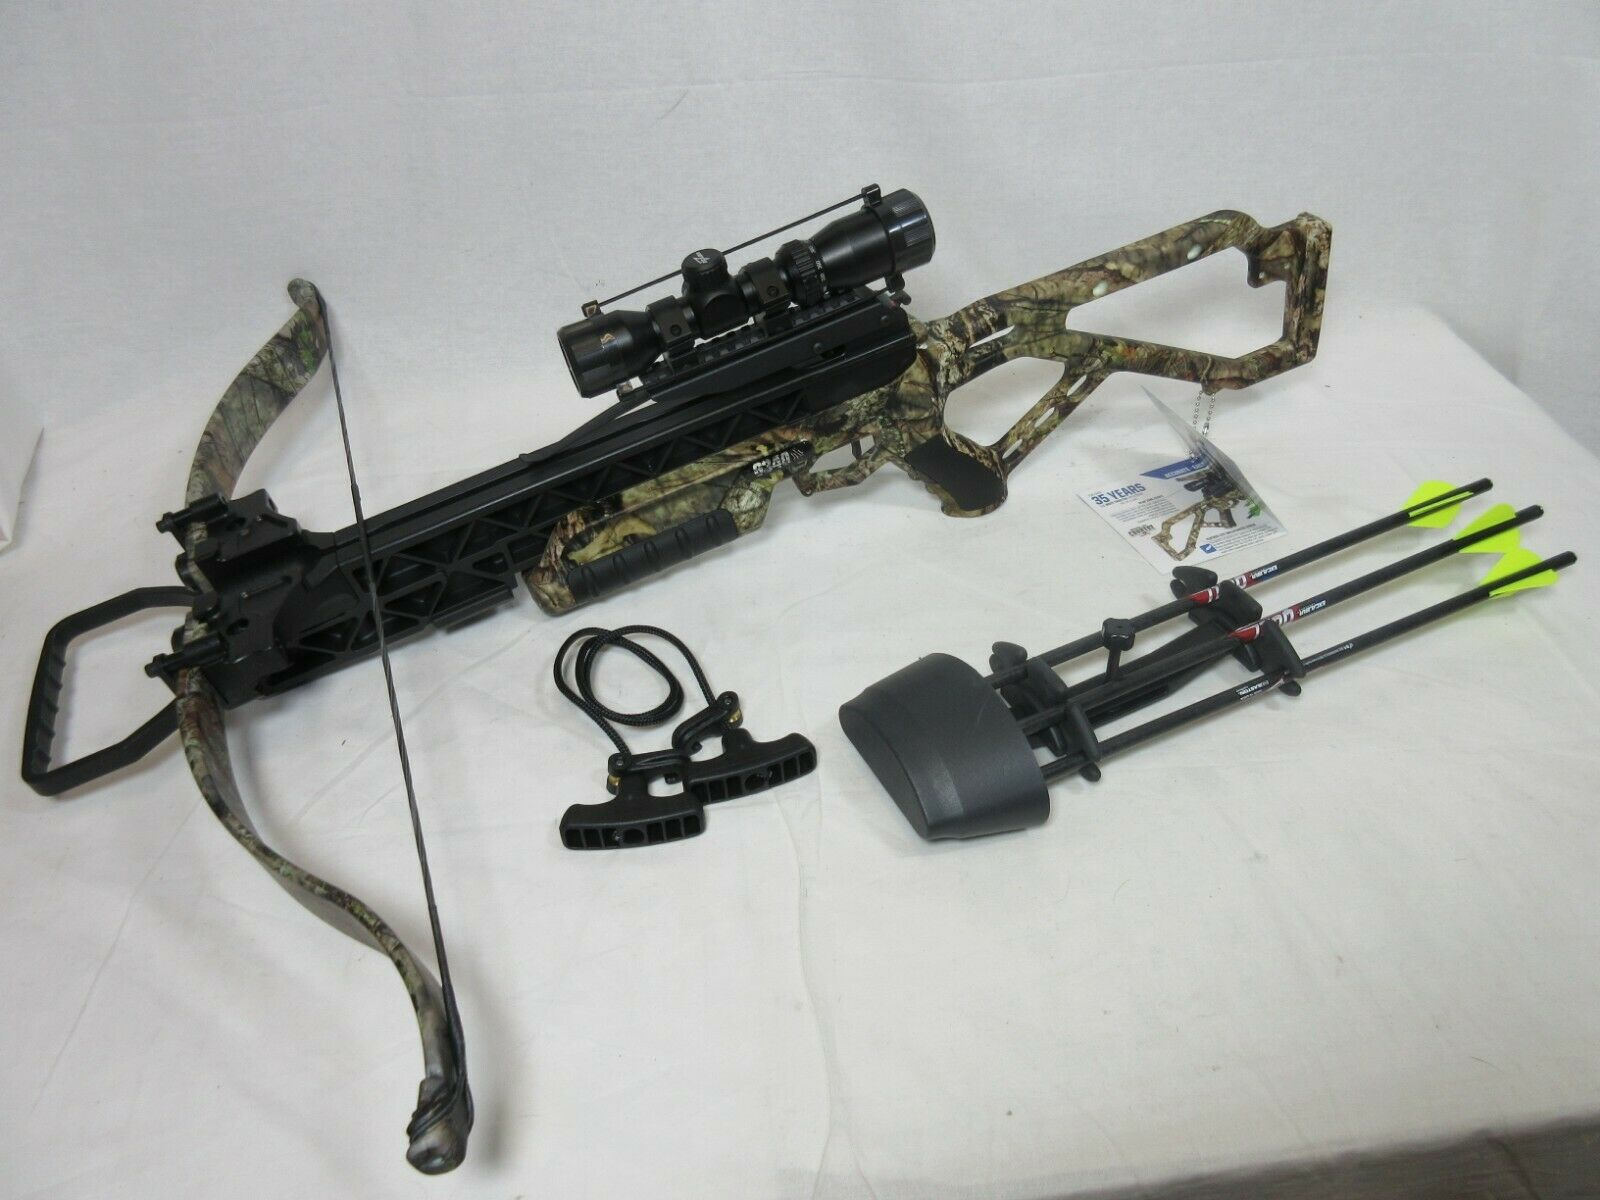 Excalibur G340 Crossbow 340 FPS 230 lbs Package w/ Dead Zone